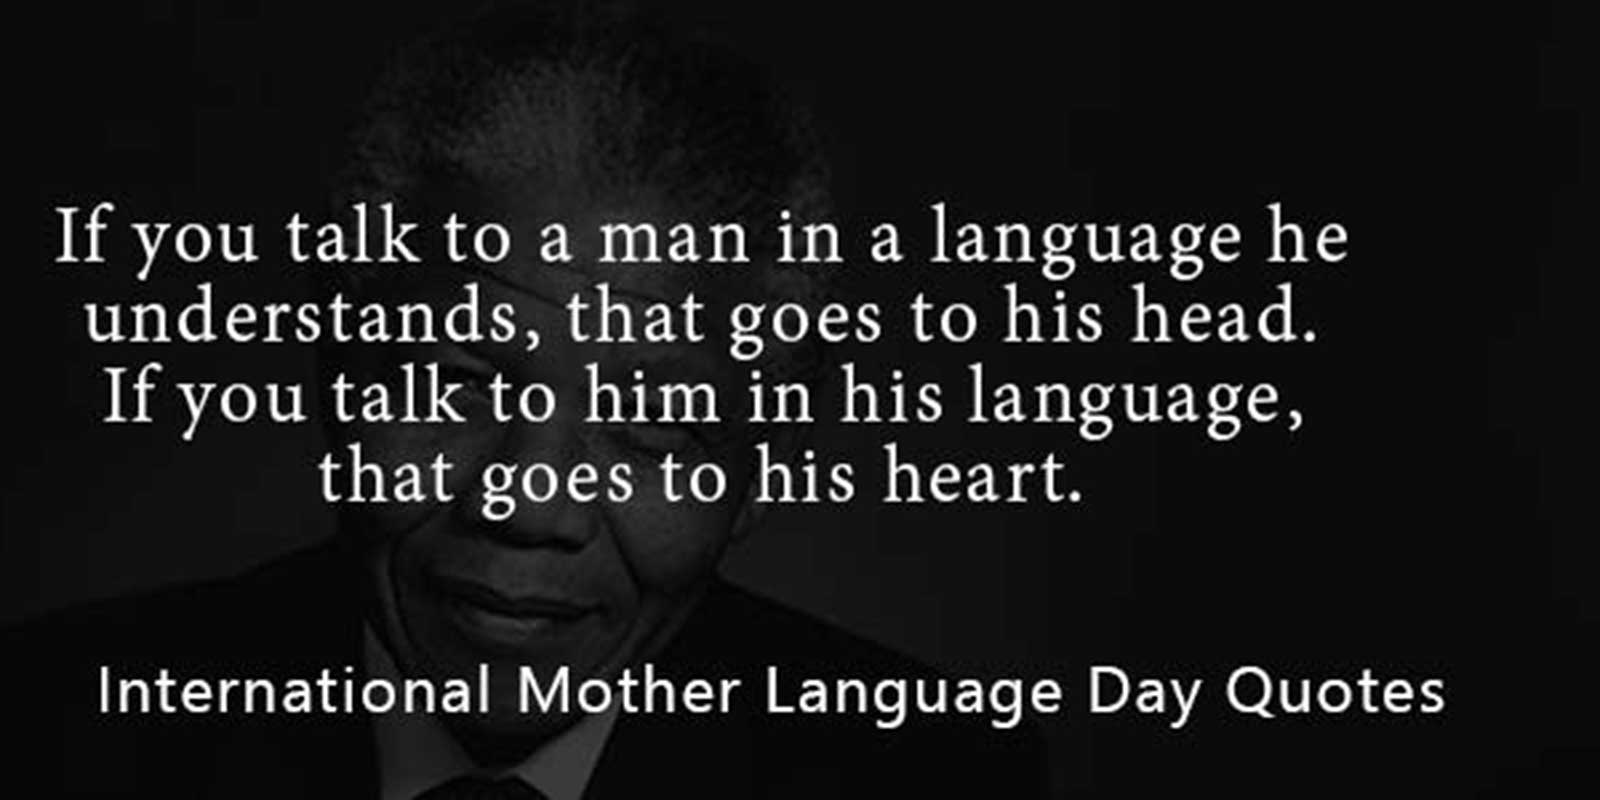 International Mother Language Day Quote